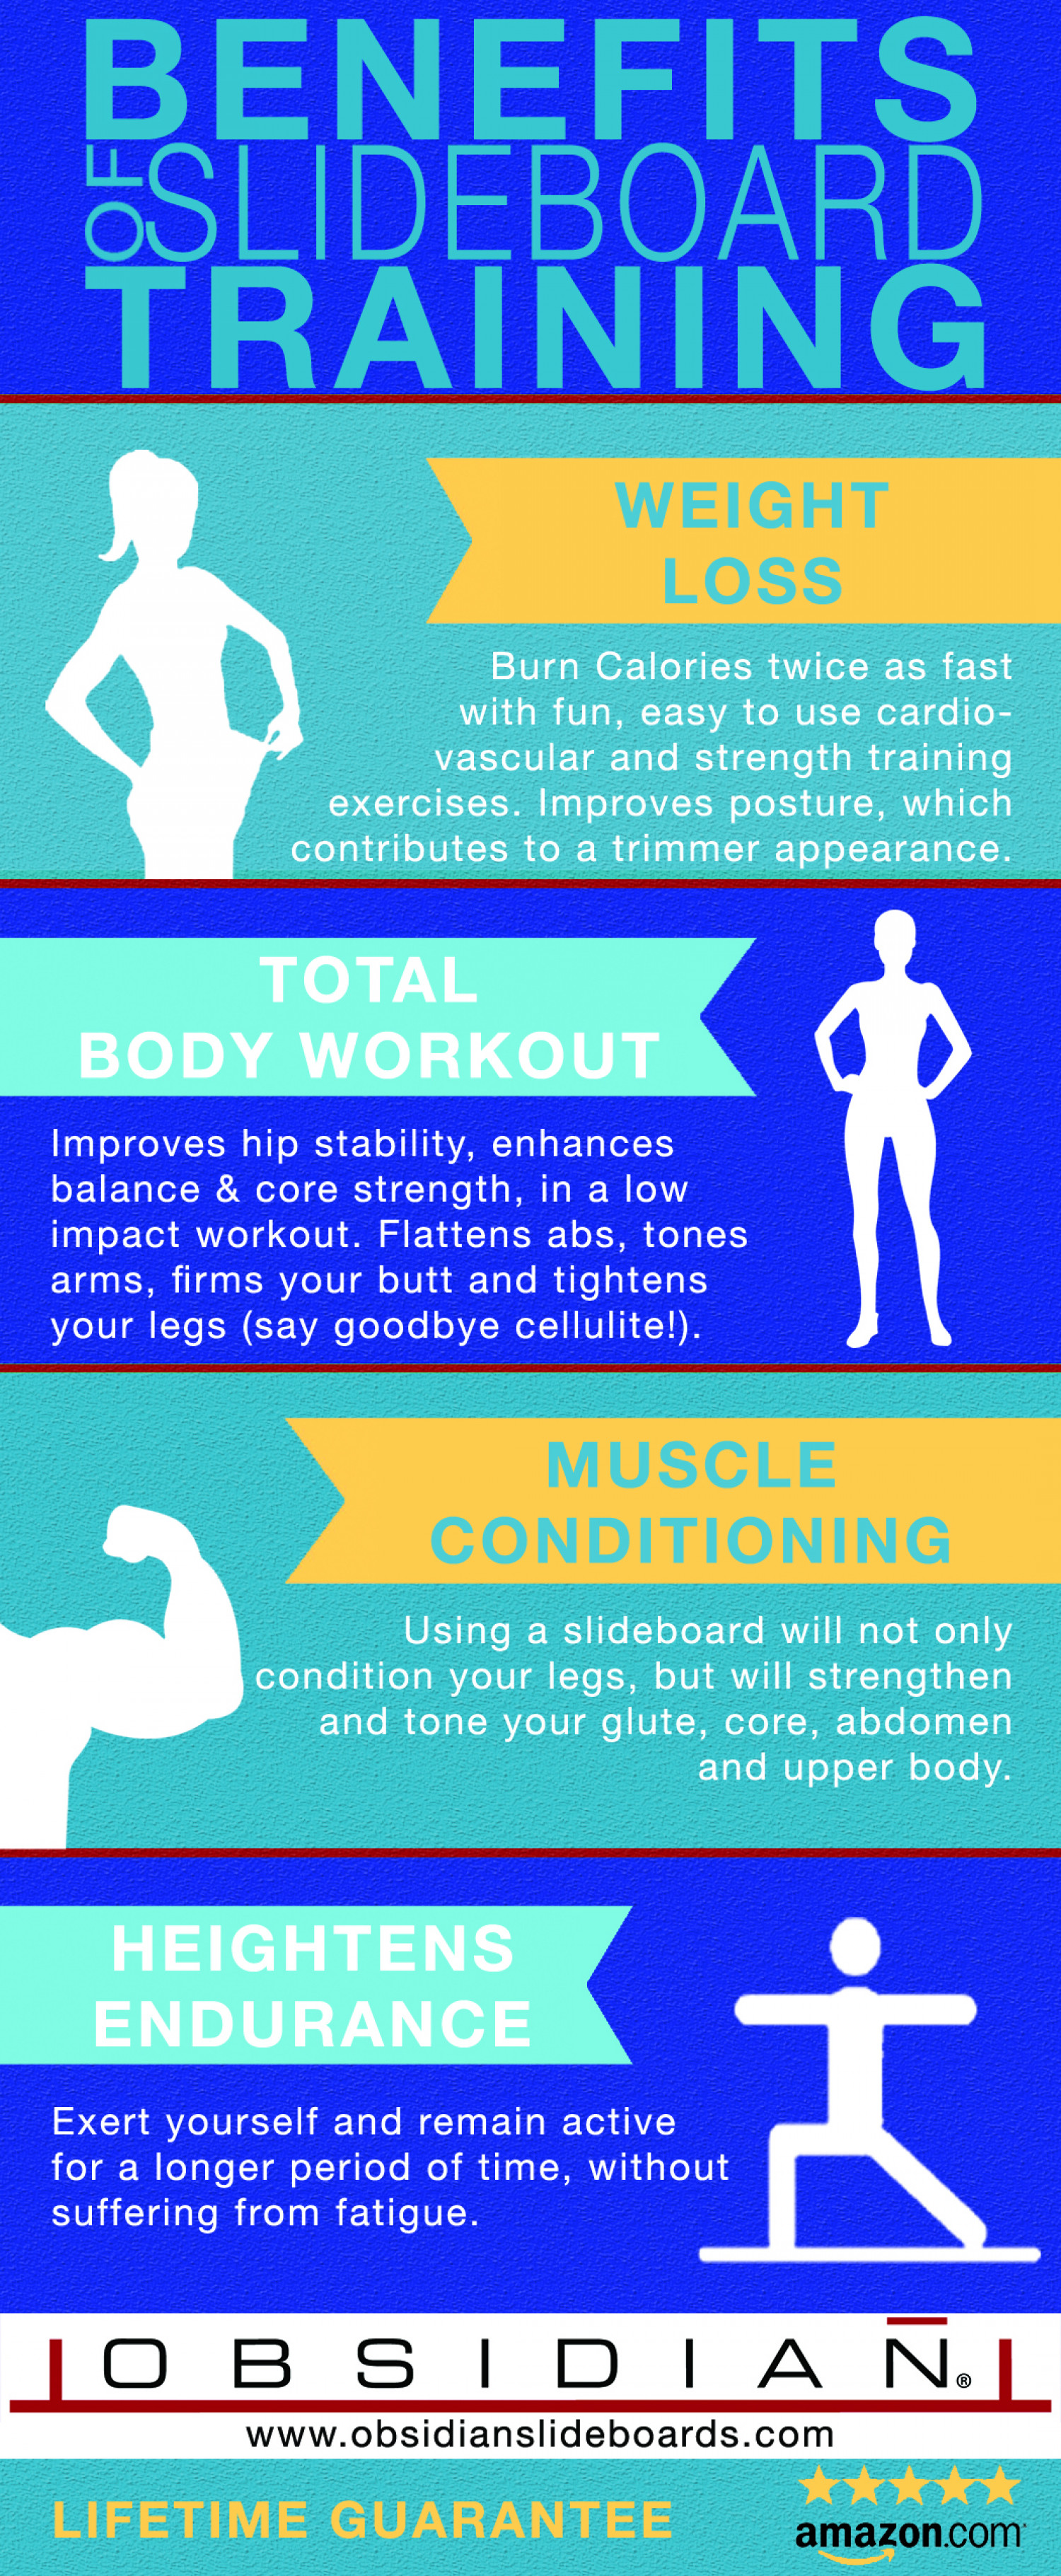 Benefits of Slide Board Training Infographic